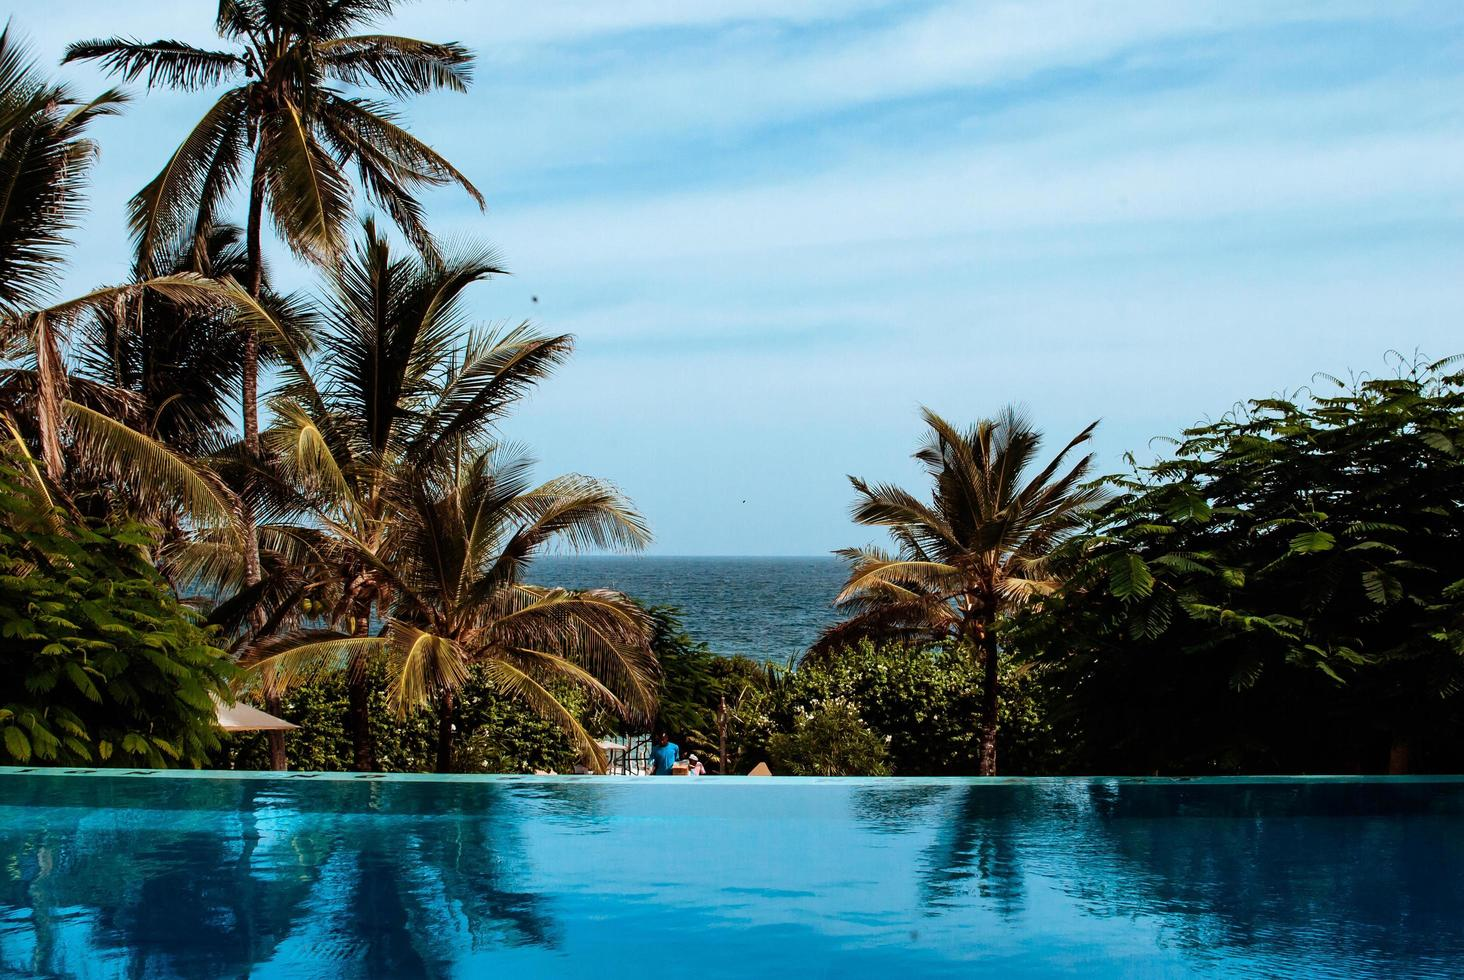 Resort swimming pool and palm trees photo